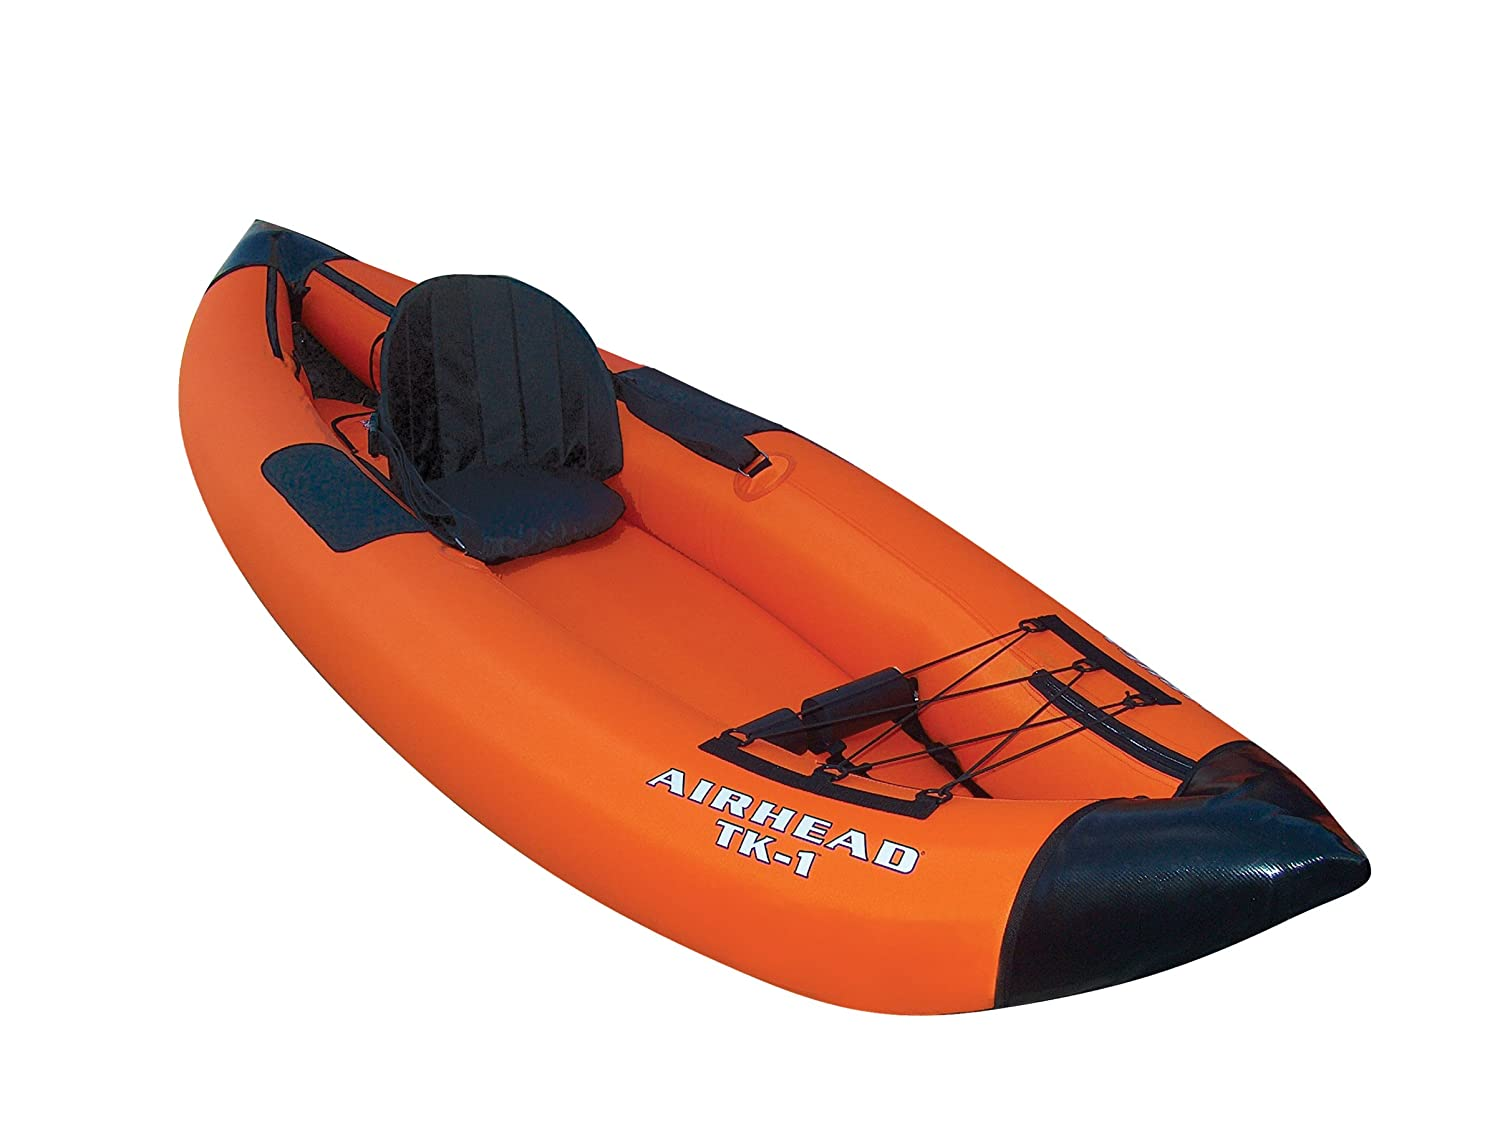 Airhead Montana One Person Inflatable Kayak